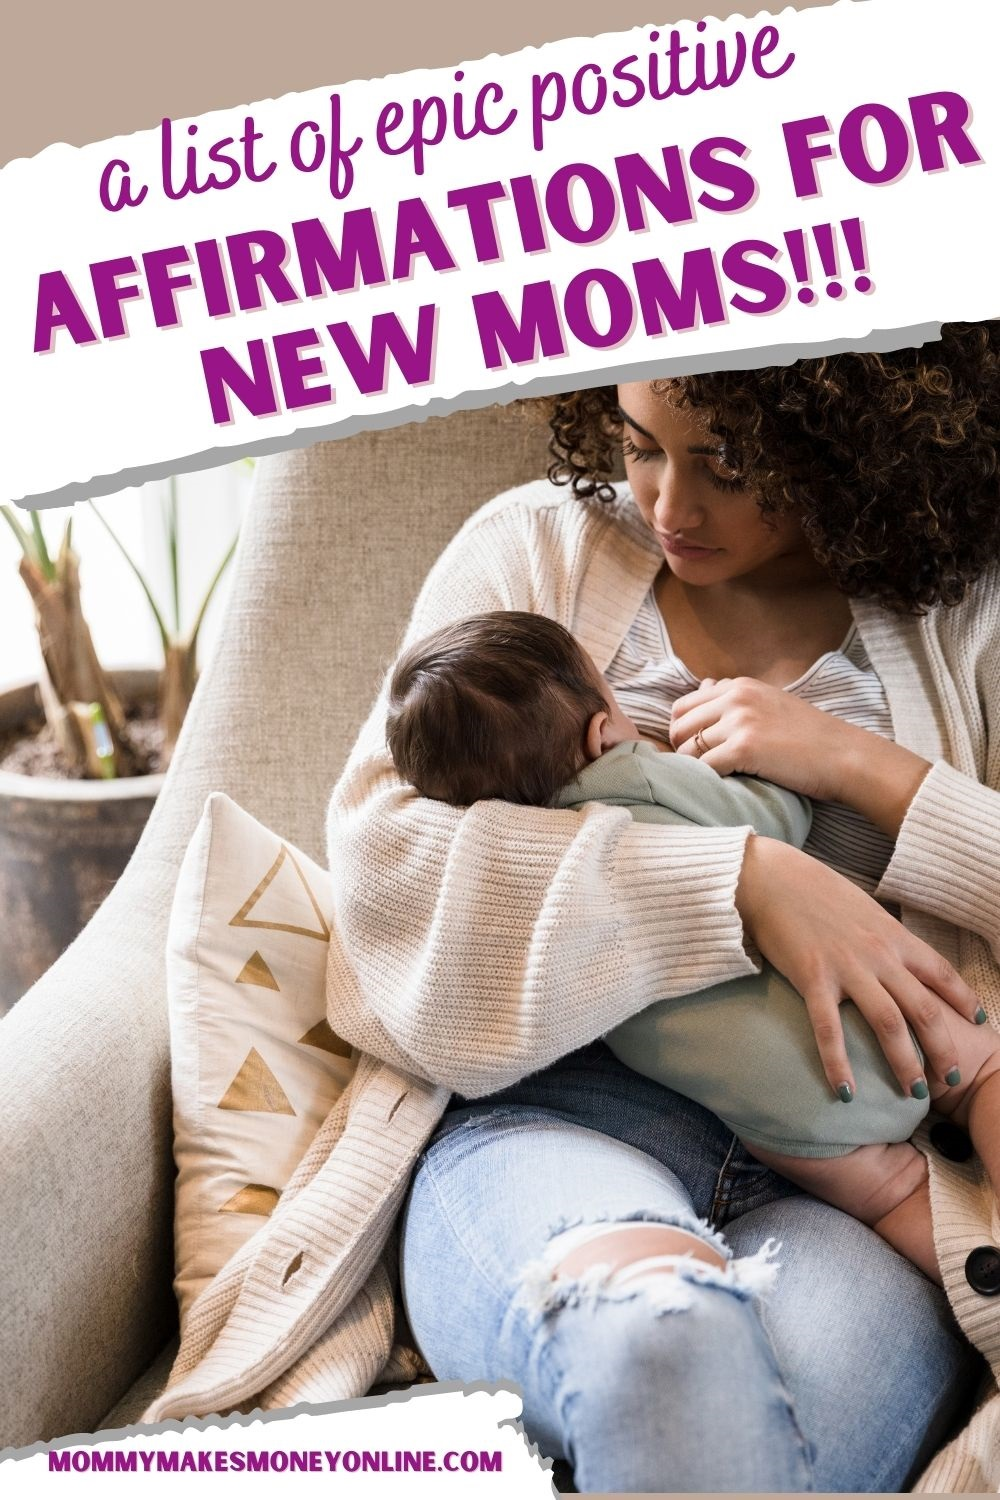 27 Affirmations for New Moms Check out these positive affirmation quotes for new moms to help out a mom struggling with newborn life. These self love affirmation quotes offer encouragement and motivation to women in need of some positive thinking to boos their spirits. Share these daily affirmation quotes with all of the new moms you know to help keep them motivated and positive during the challenging newborn phase. #positive #affirmations #daily #quotes #mom #motherhood